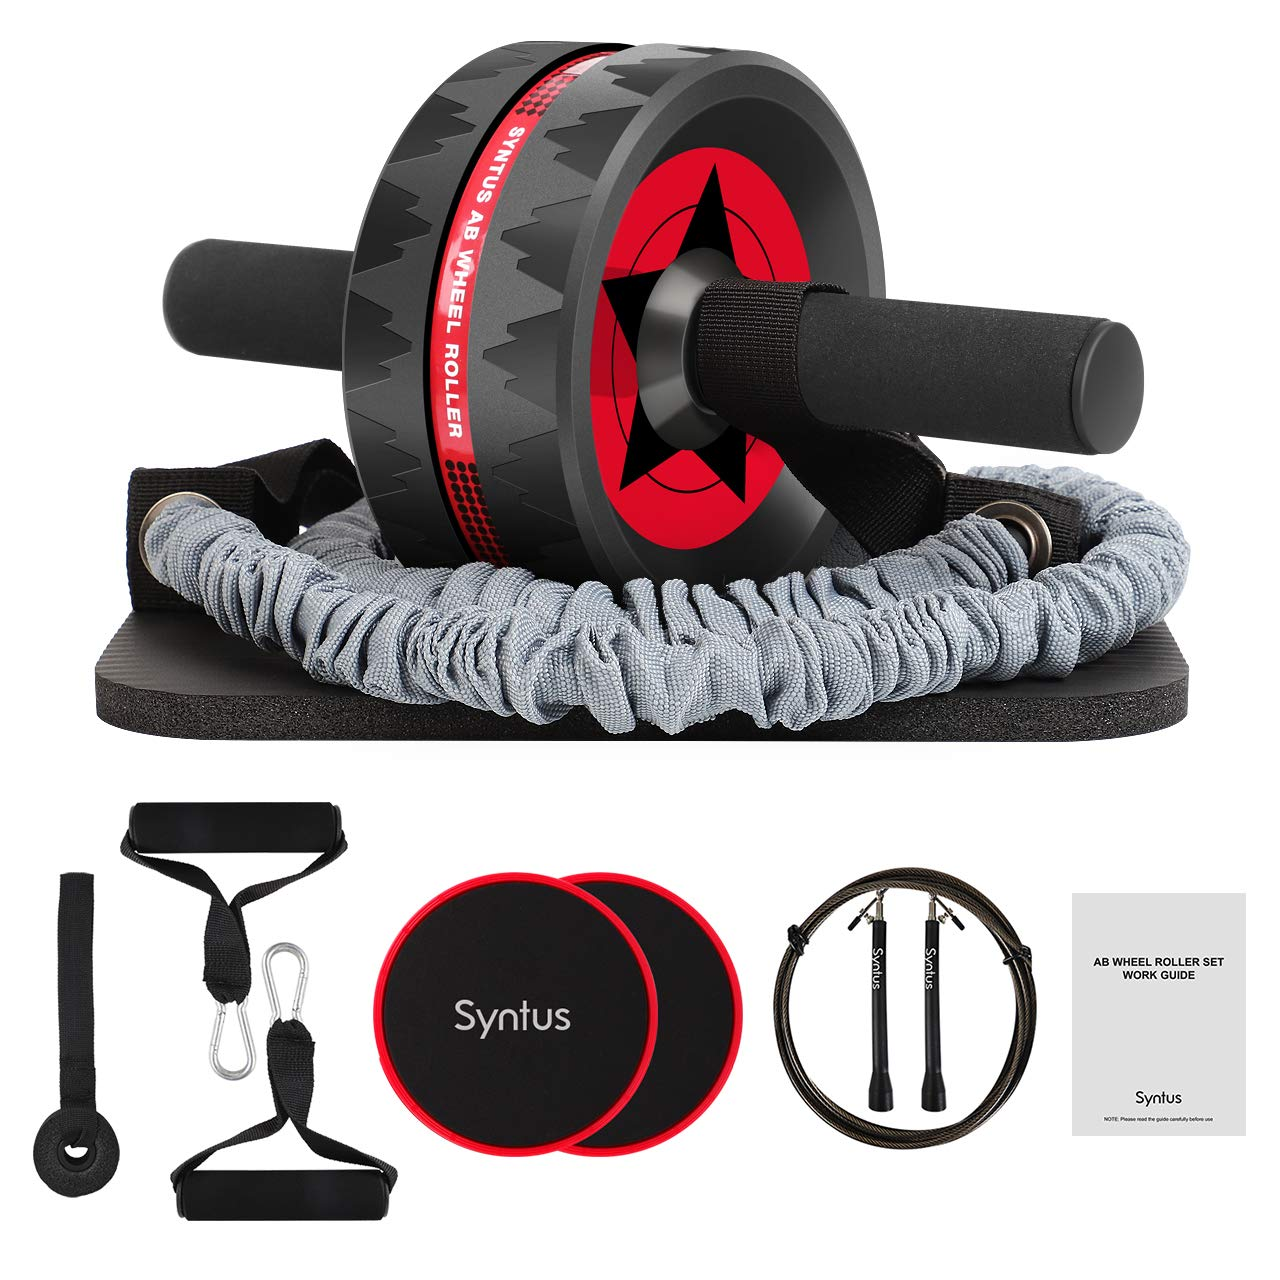 Syntus Newly 10-in-1 AB Wheel Roller with Knee Pads Resistance Bands Handles Grips Adjustable Skipping Jump Rope Core Sliders Door Anchor, Carry Bag & Guide BookHome Gym Workout Exercise